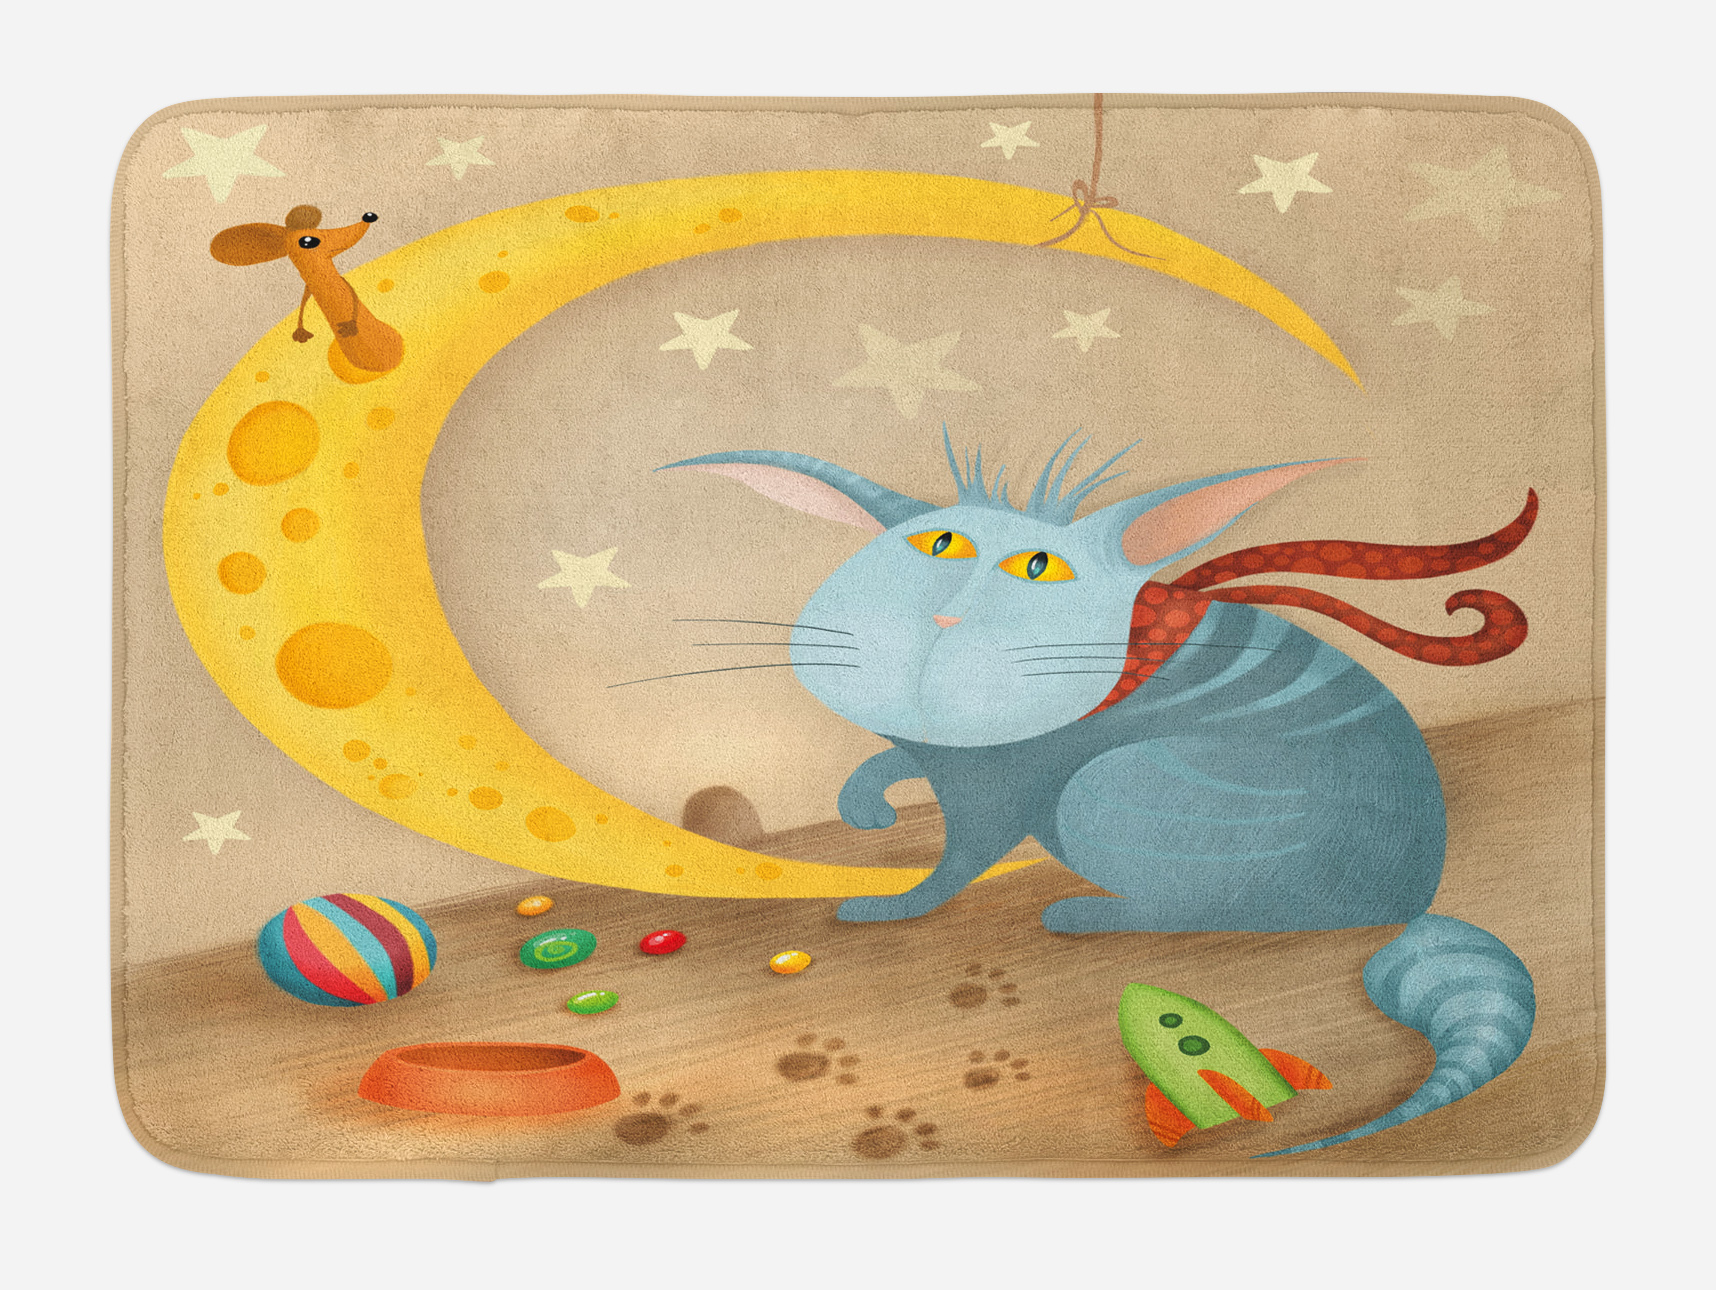 Kids Bath Mat, Cat and Mouse on Crescent Moon Shaped Cheese Cute Paws Toys Kids Children... by 3decor llc